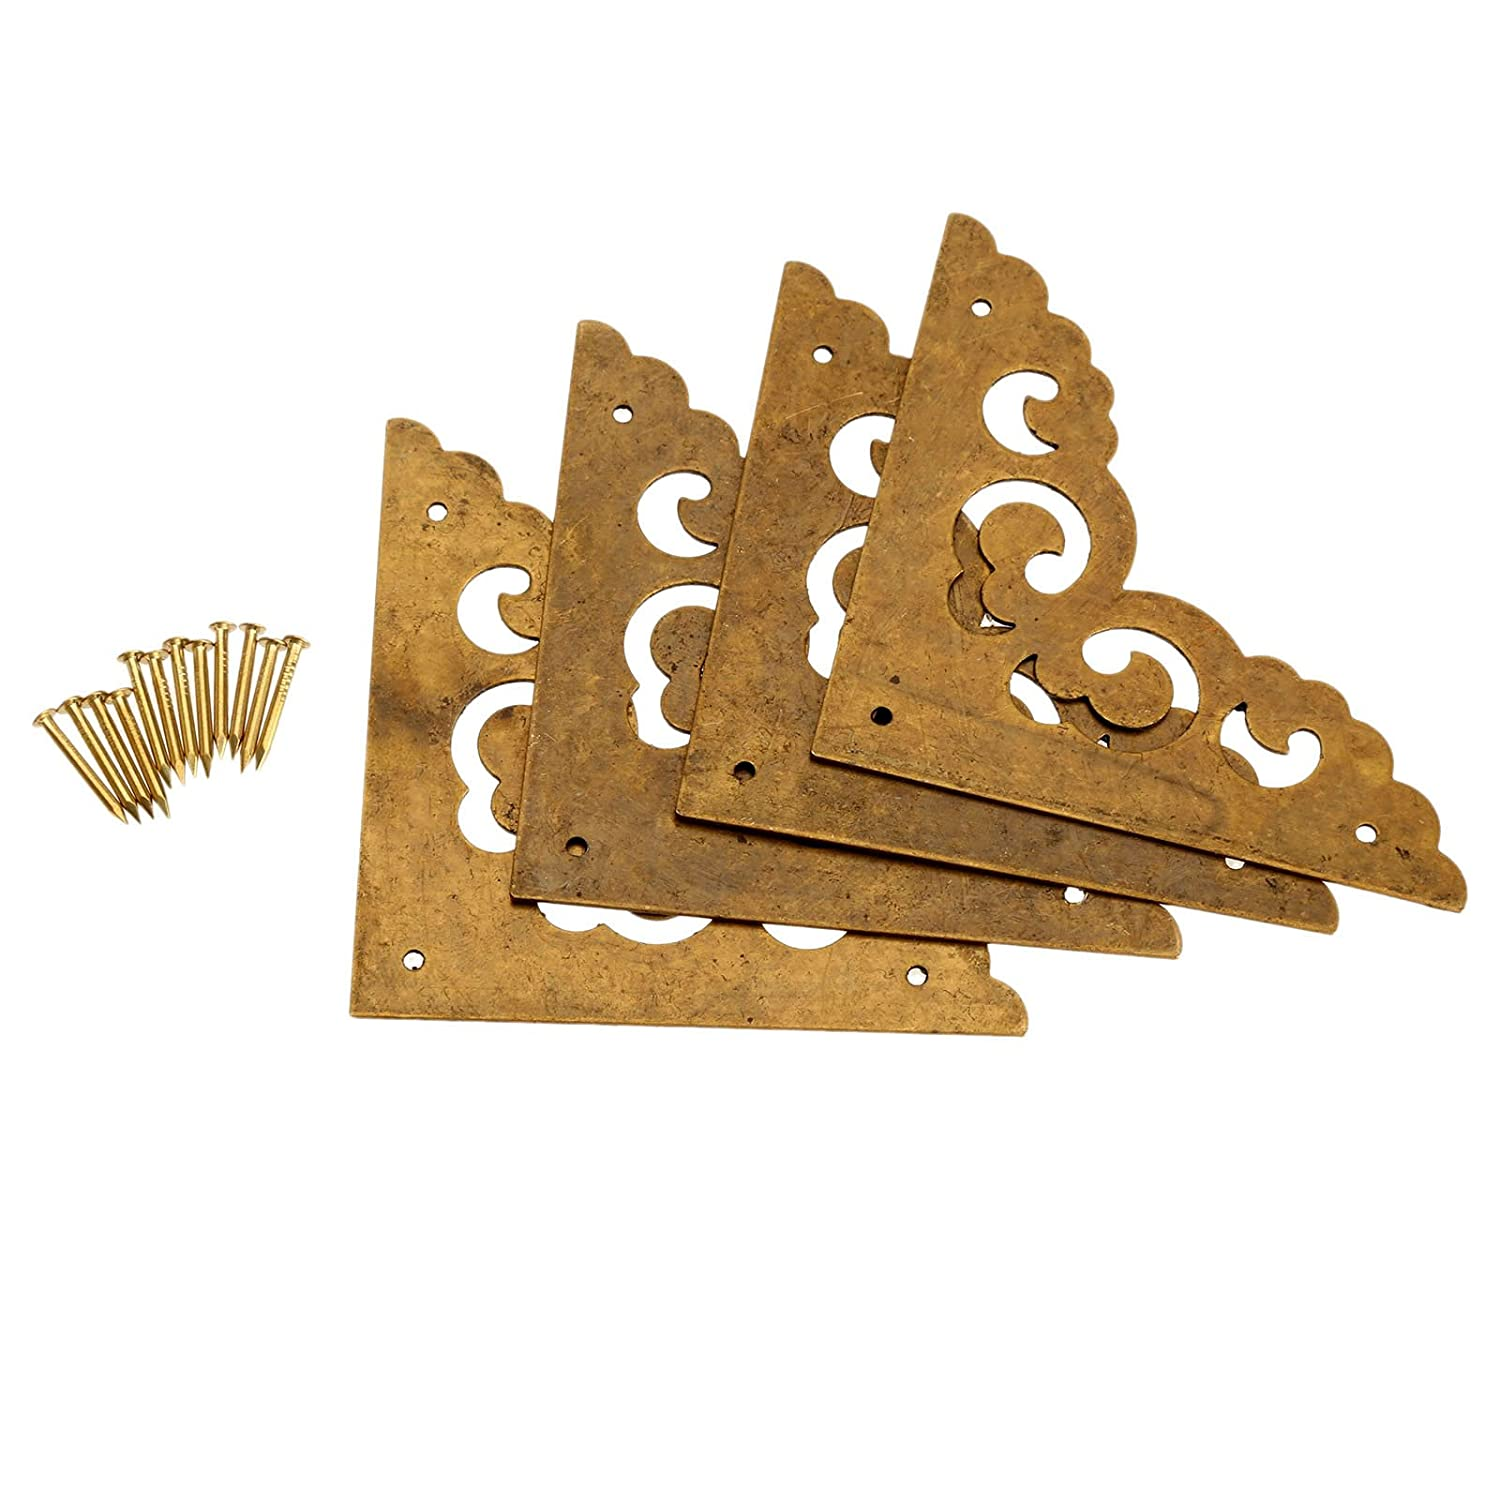 "4Pcs 2.5"" Brass Flat Corners Bracket for Box Cabinet Decorative Furniture Hardware, Antique Brass"